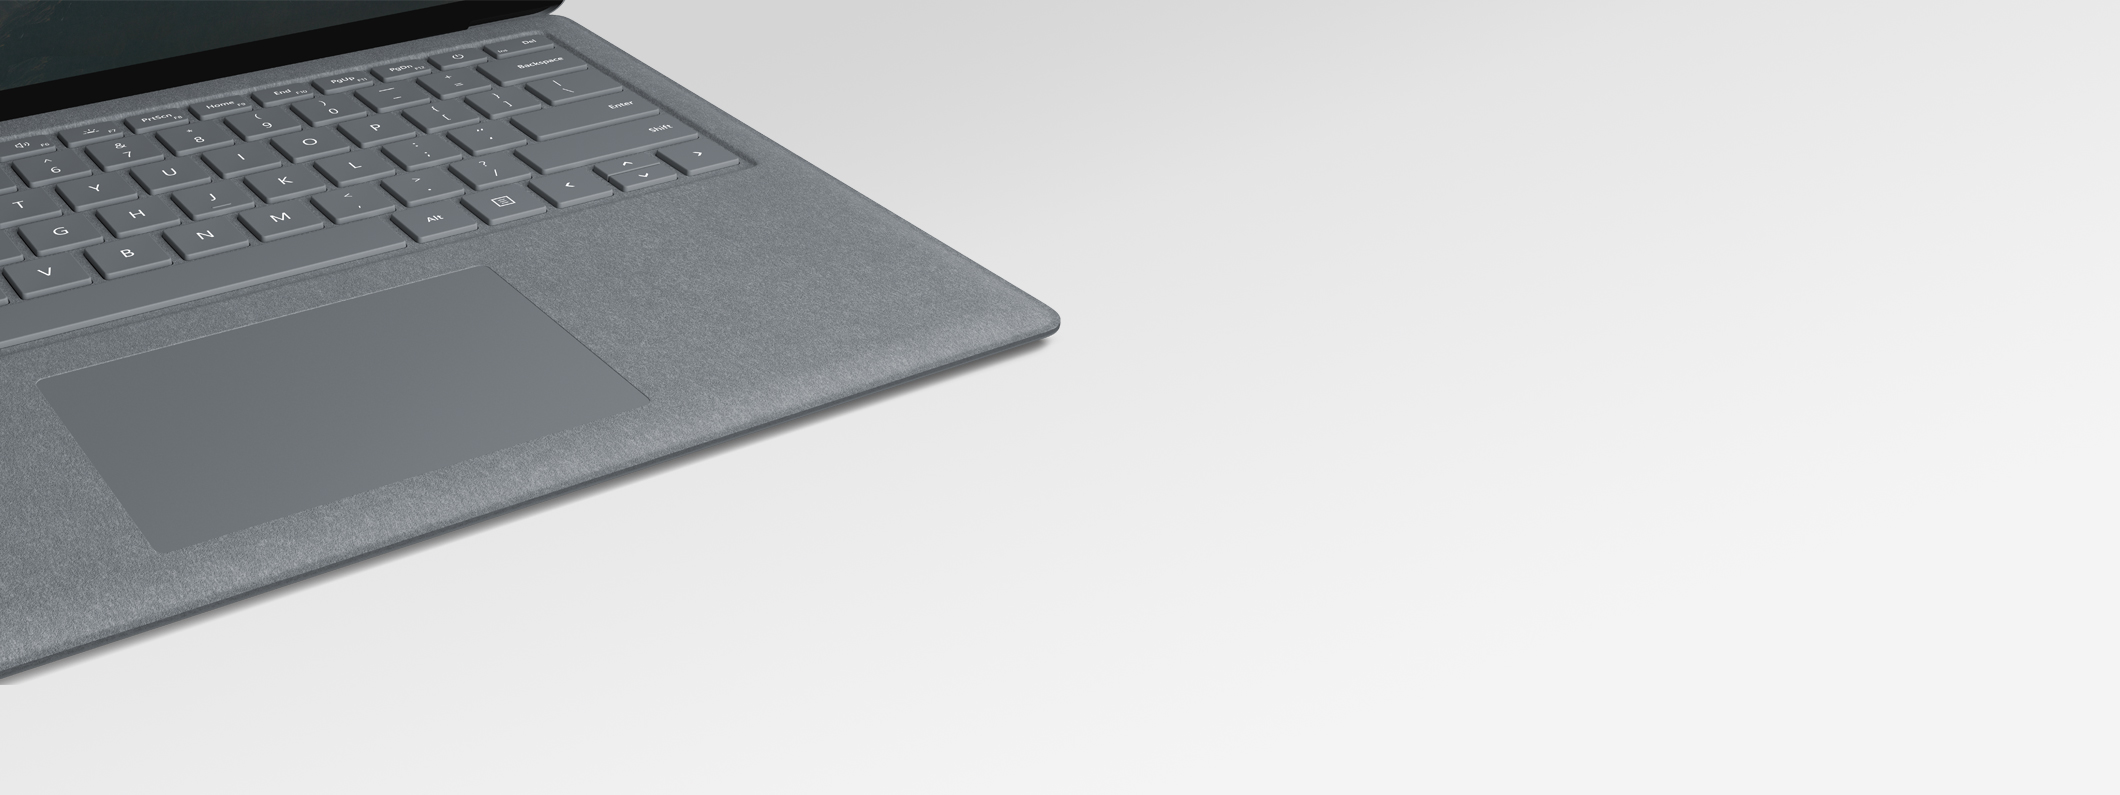 Surface Laptop 2-tastatur og styreplate